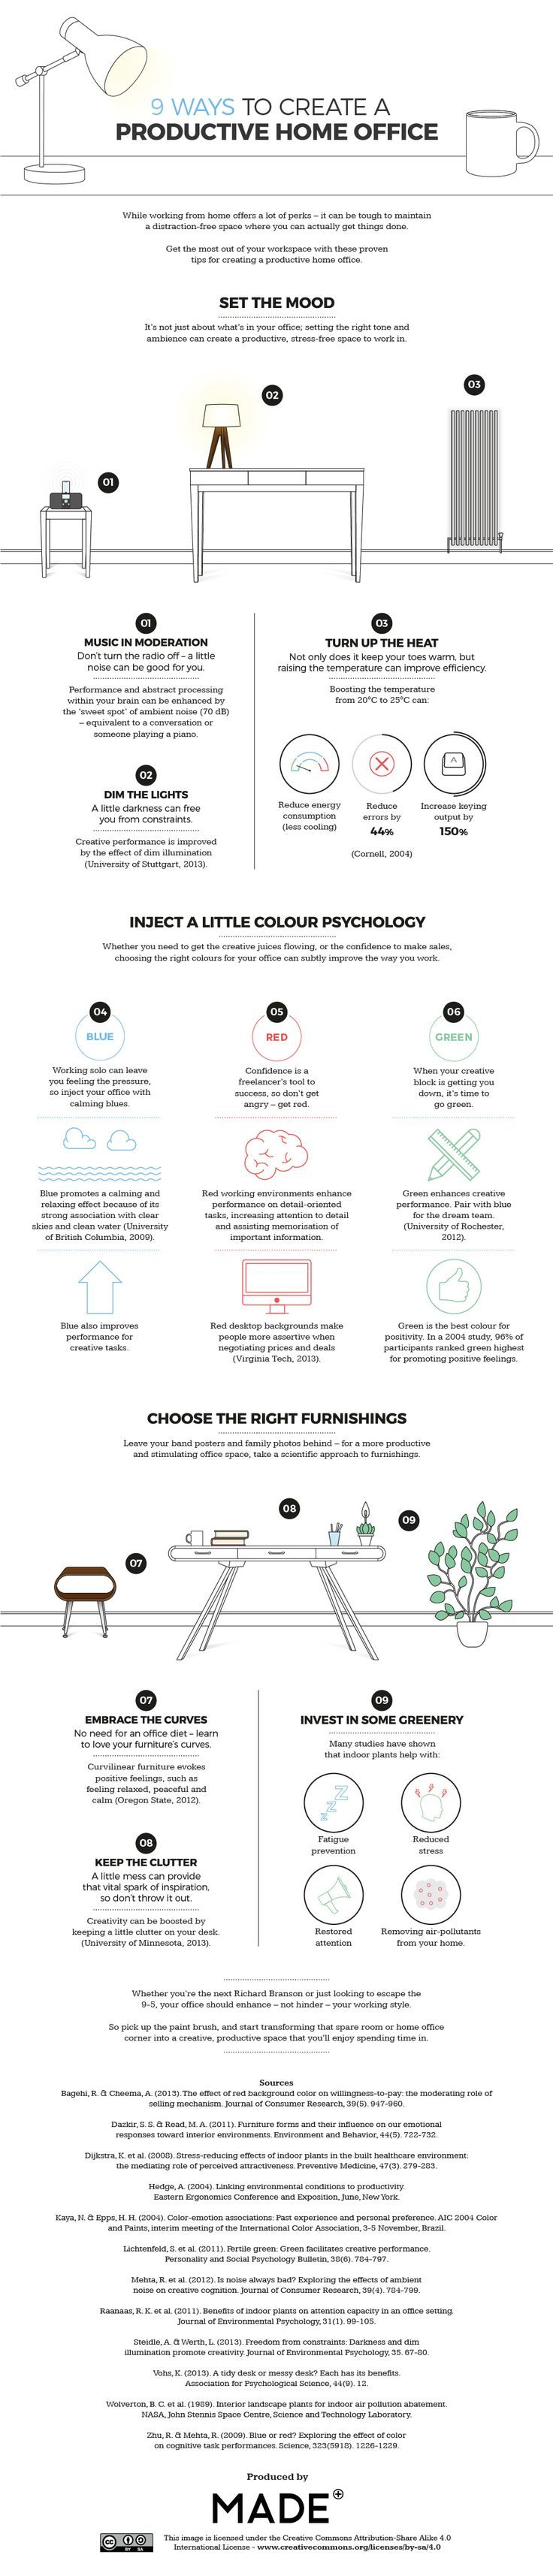 9 Ways to Create a Productive Home Office (Infographic)                                                                                                                                                     More